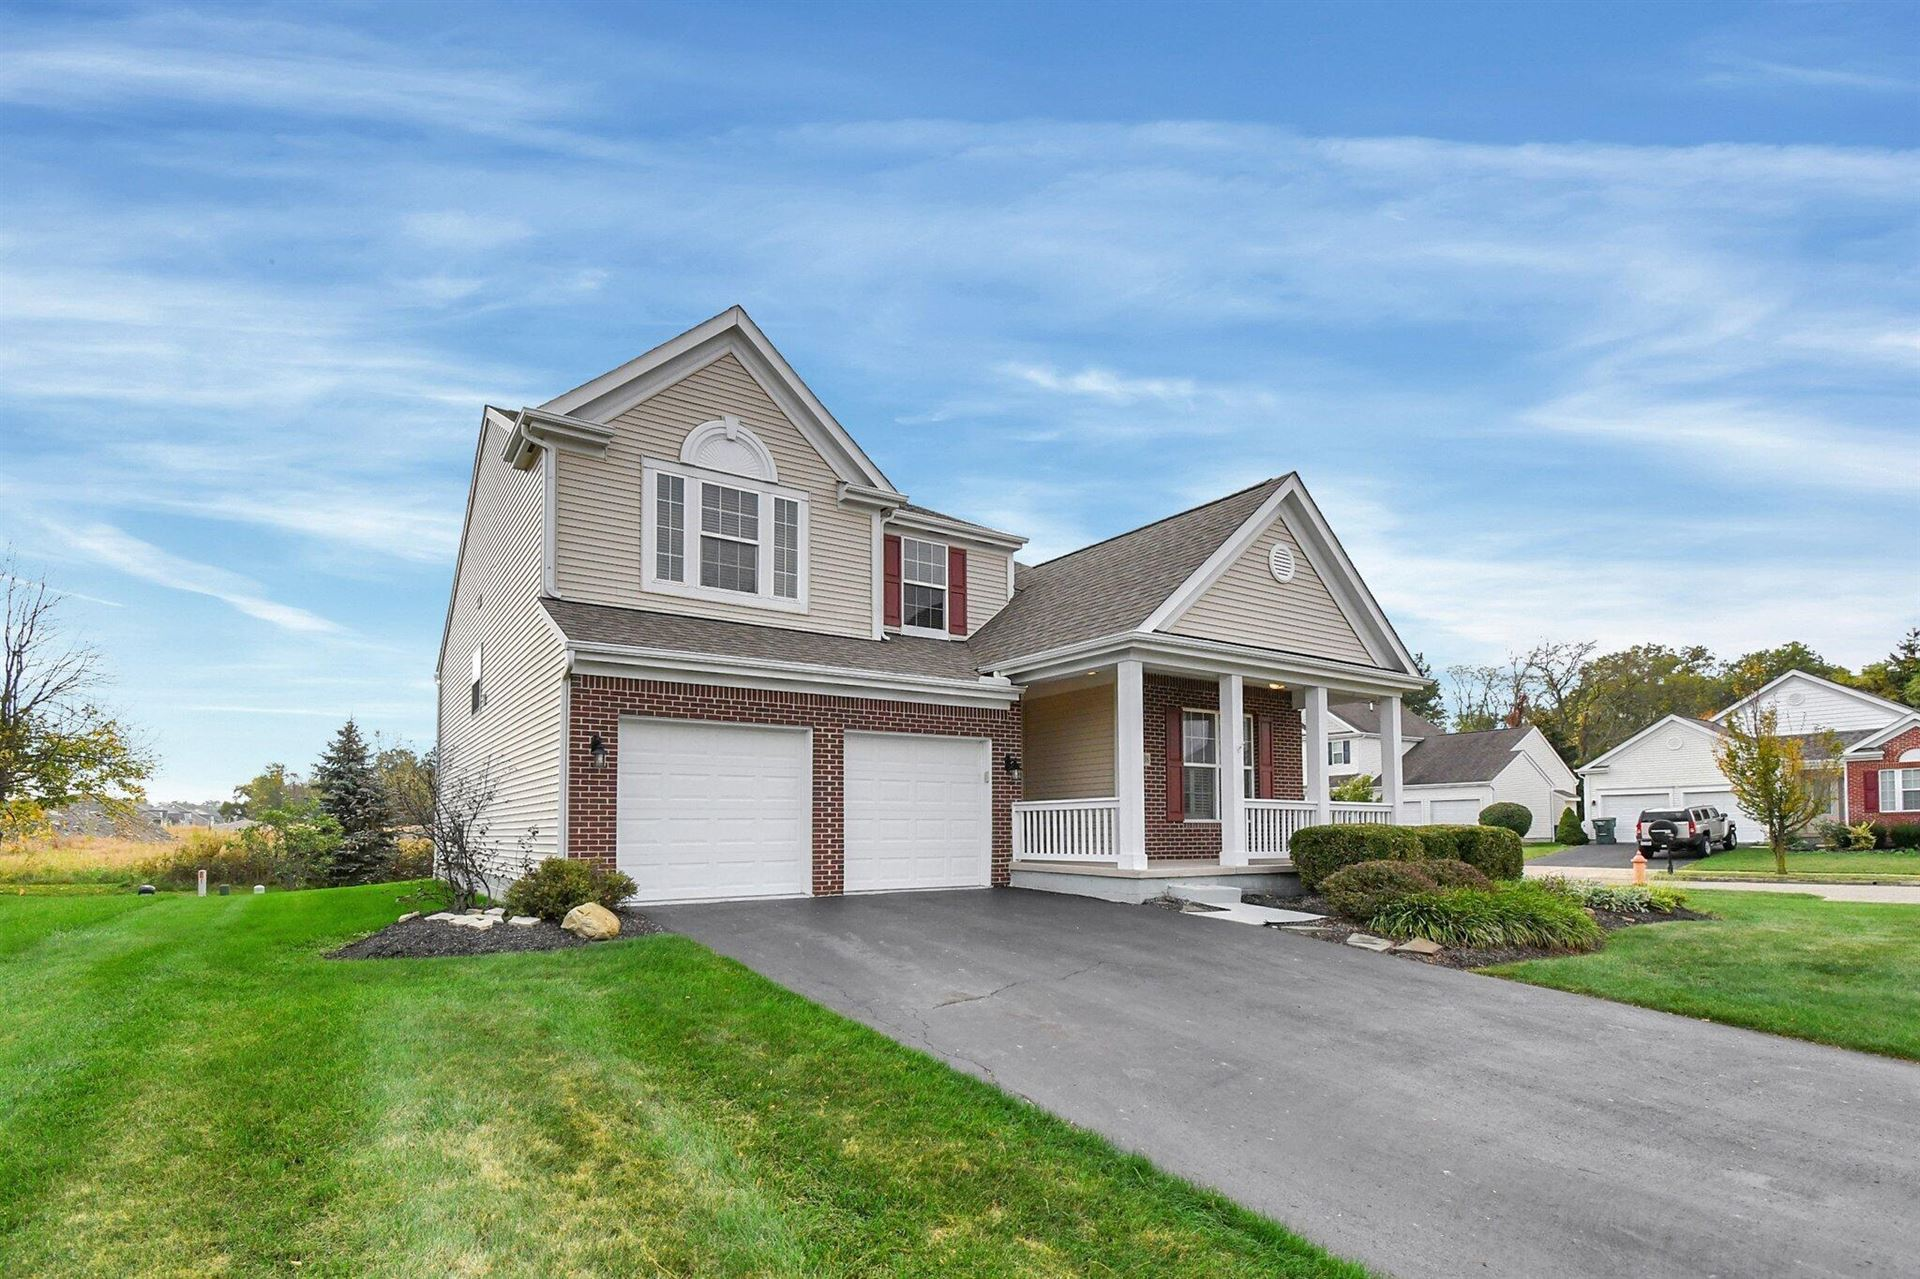 Photo of 6108 Farrier Place, New Albany, OH 43054 (MLS # 221041025)